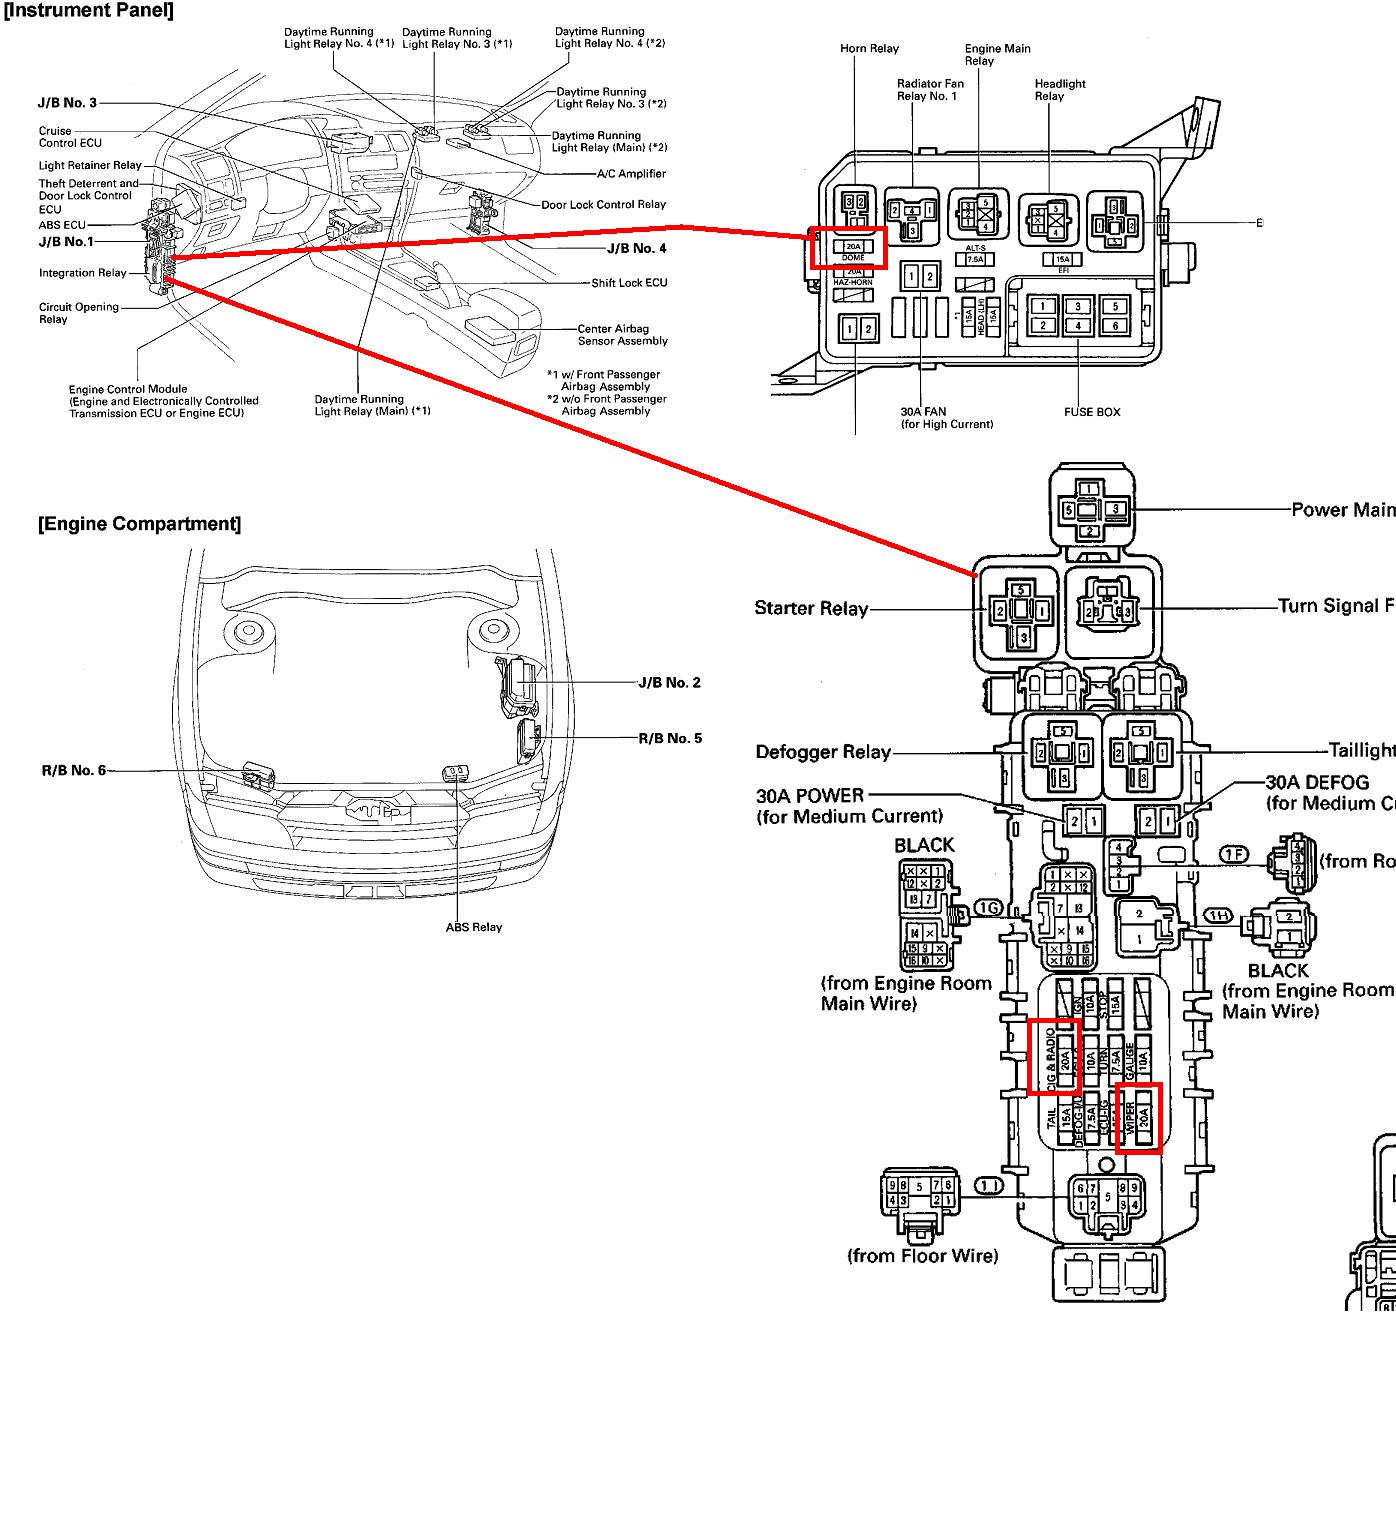 hight resolution of 1998 toyota corolla fuse box diagram wiring library 95 toyota corolla fuel filter 2009 toyota corolla